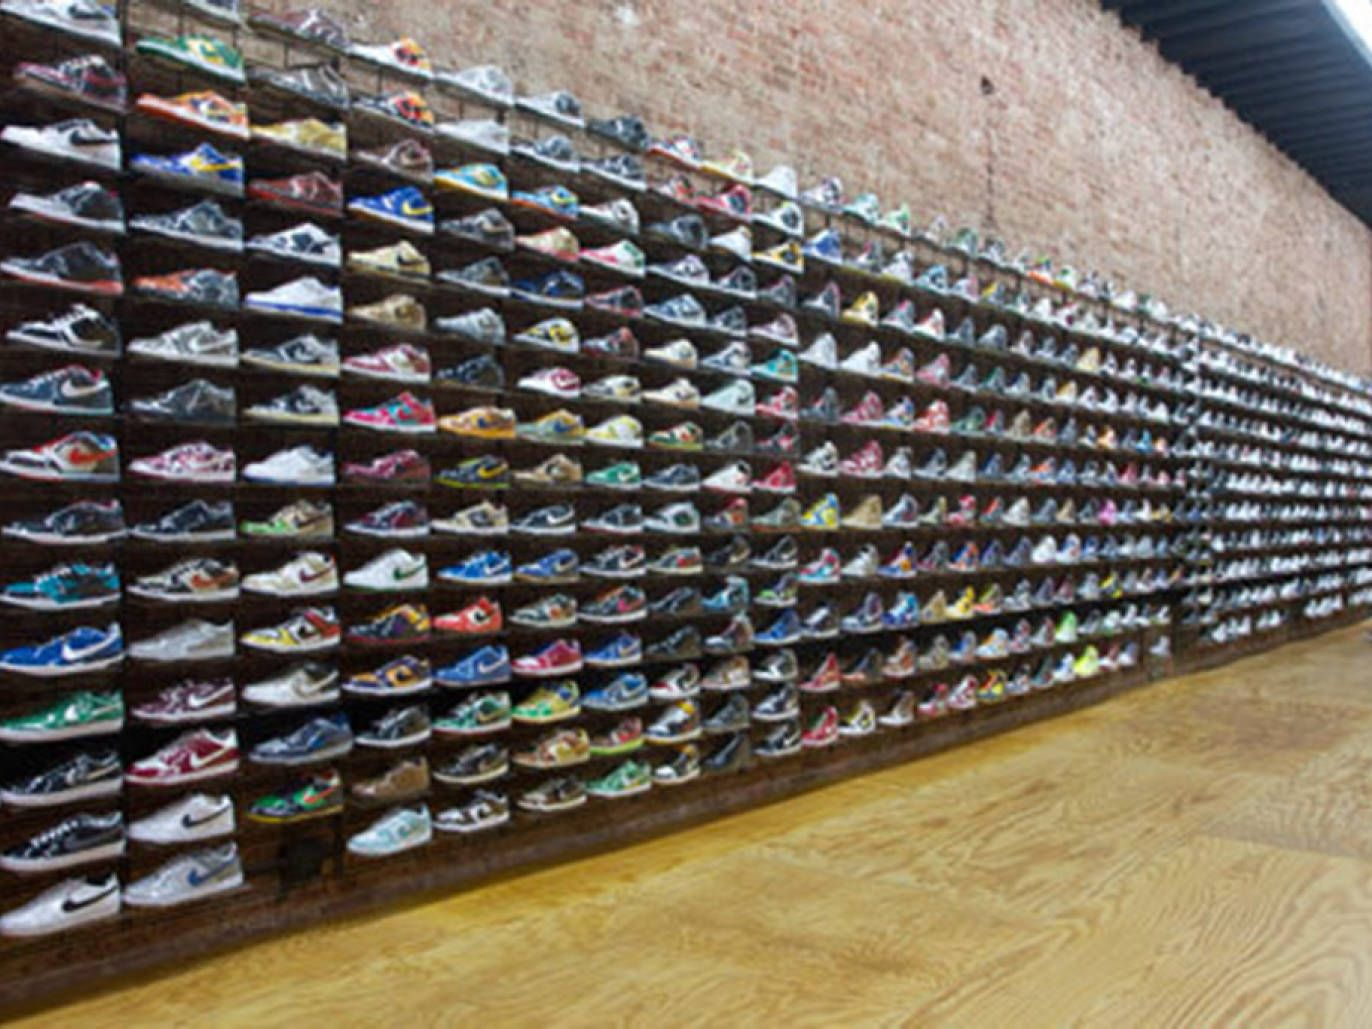 Furniture stores nyc, Sneaker stores